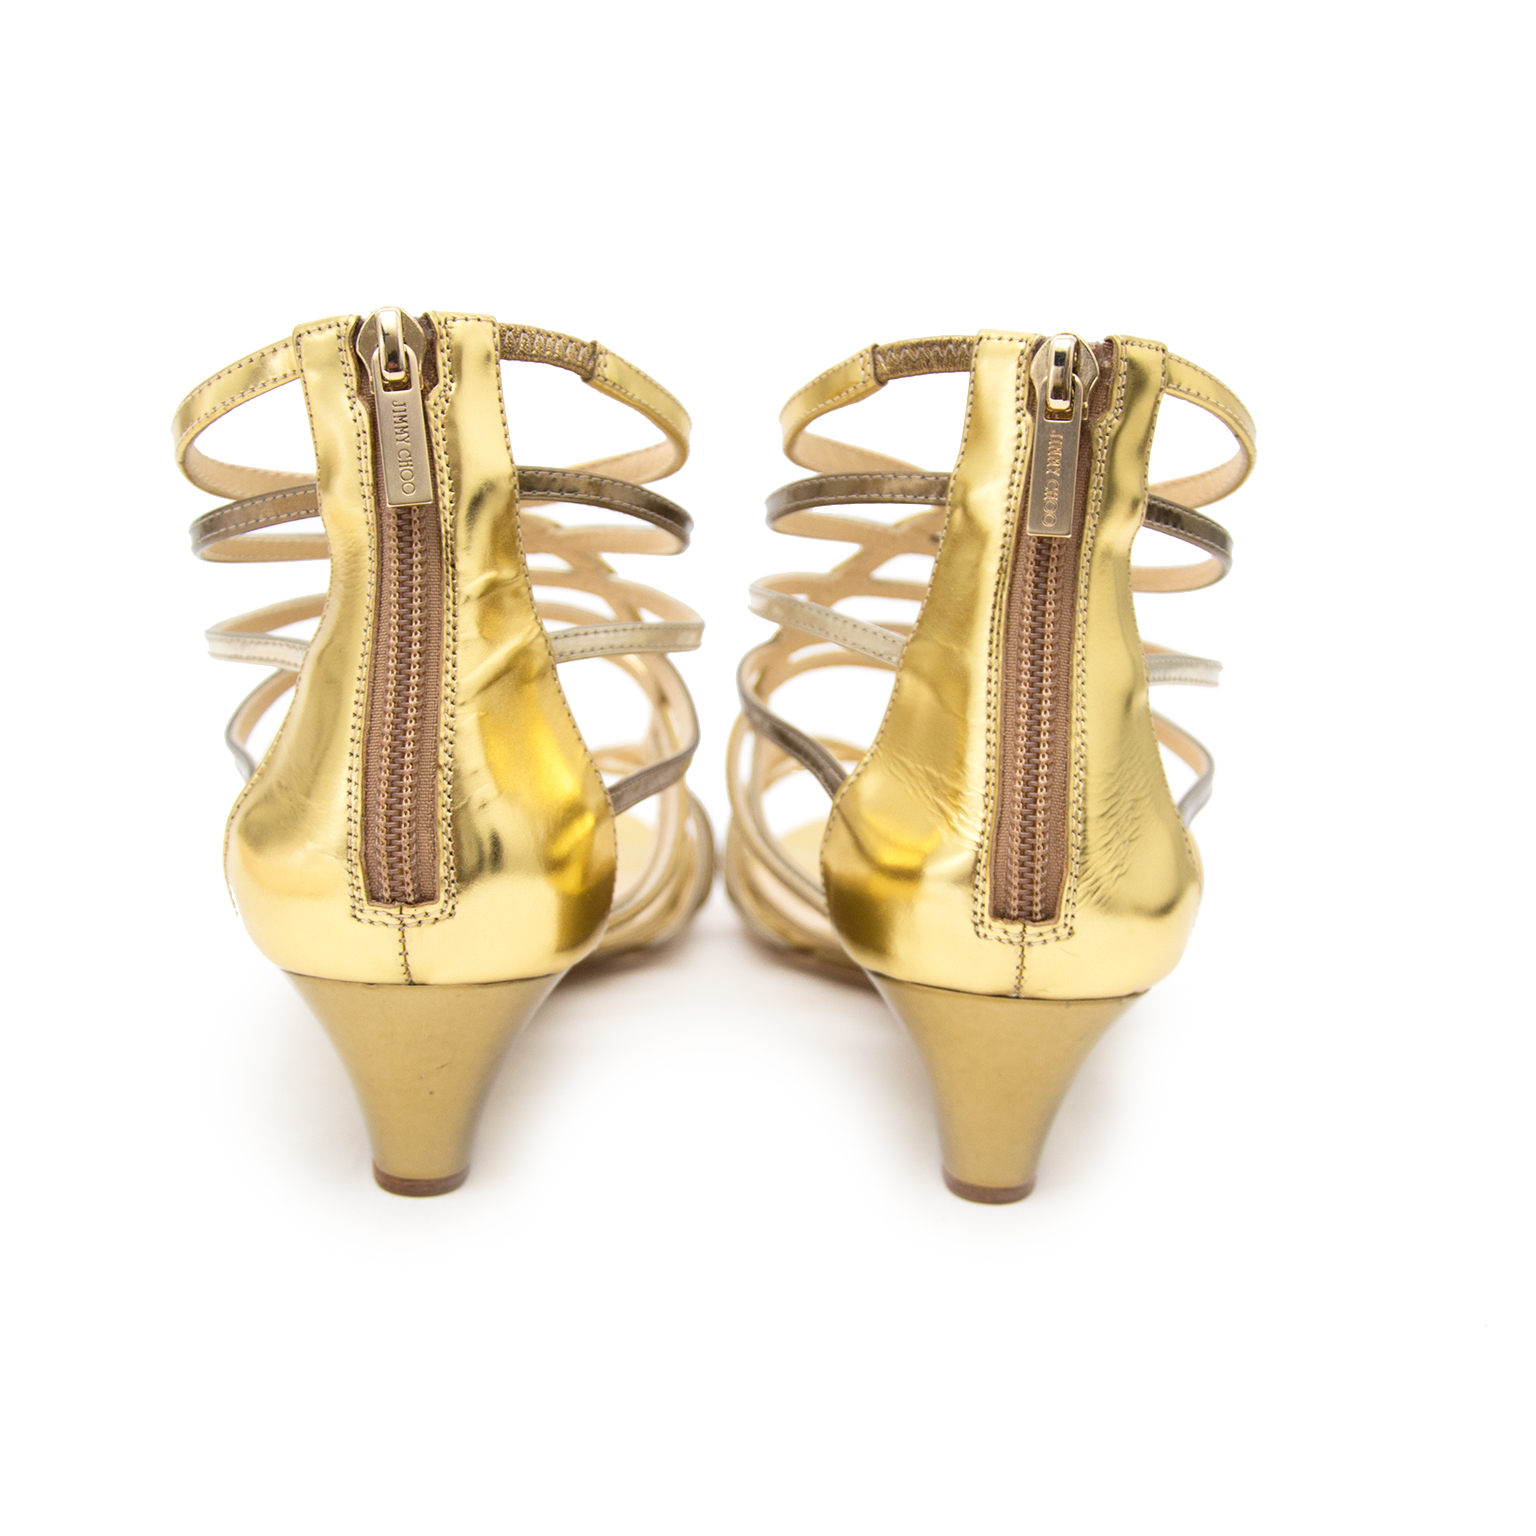 Buy secondhand Jimmy Choo Gold Sandals 39,5 online